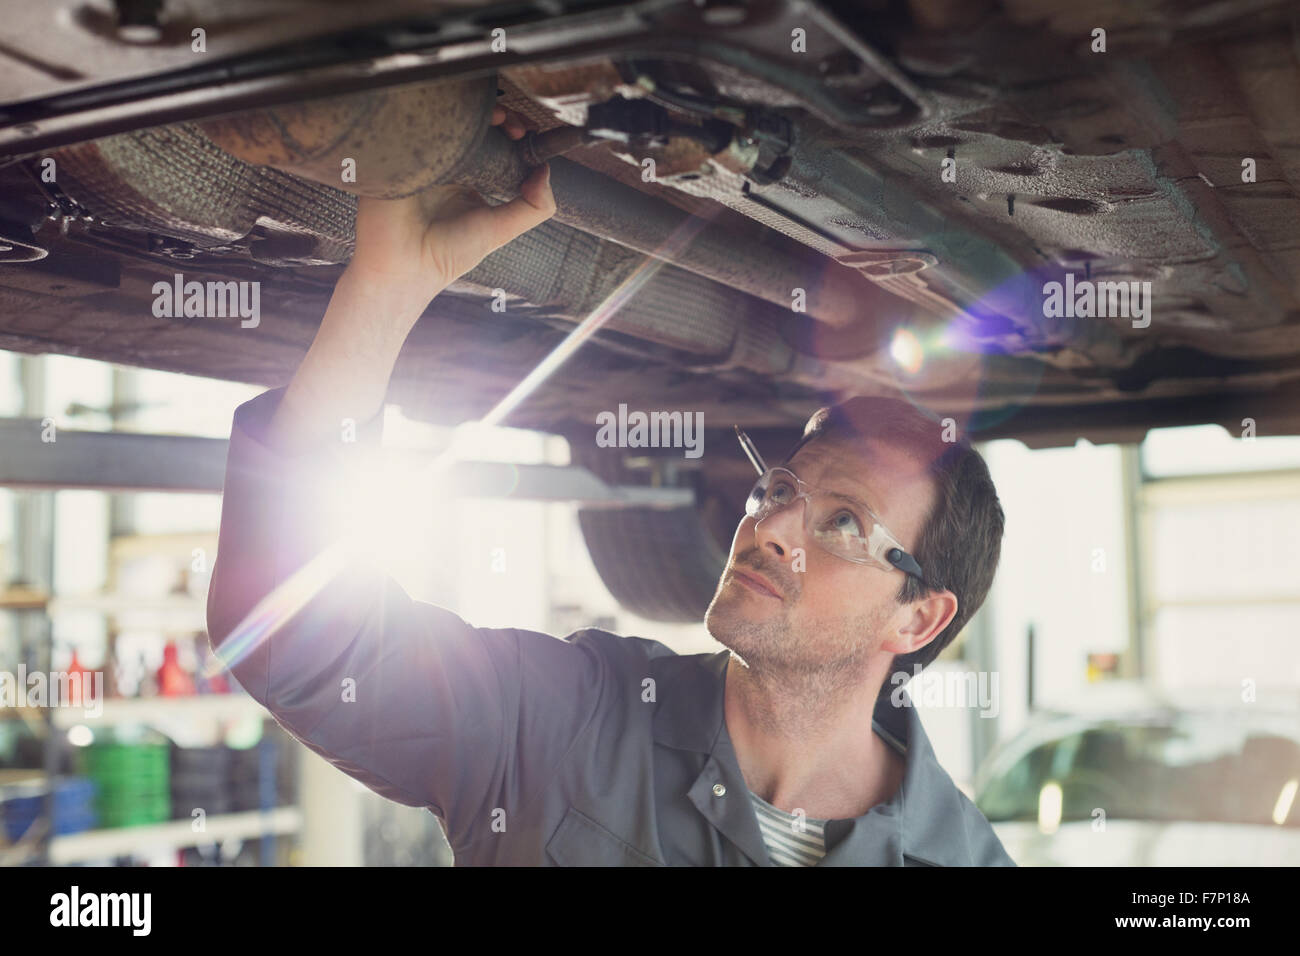 Mechanic working under car in auto repair shop - Stock Image